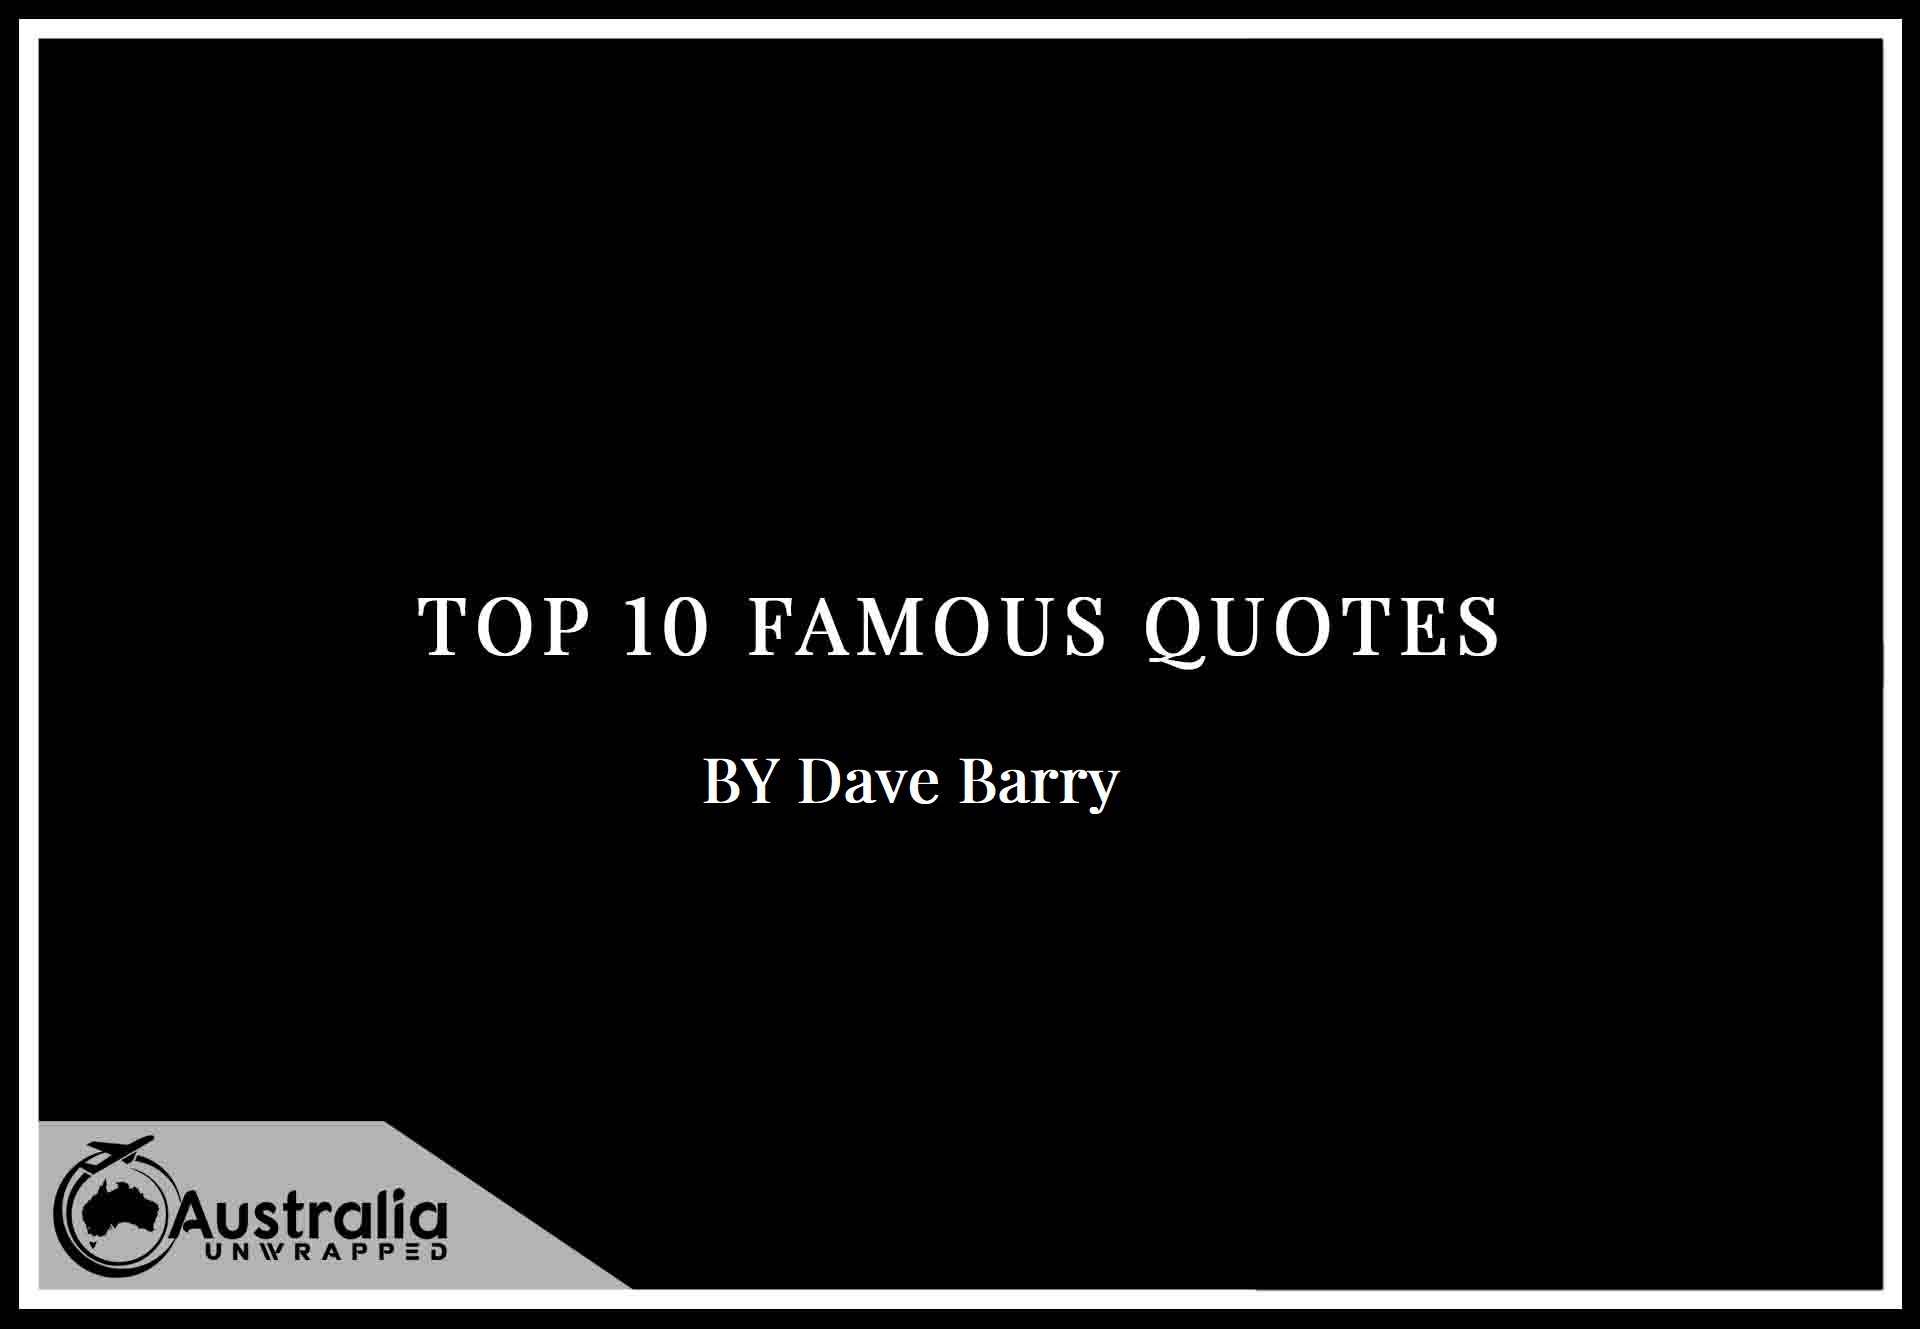 Top 10 Famous Quotes by Author Dave Barry